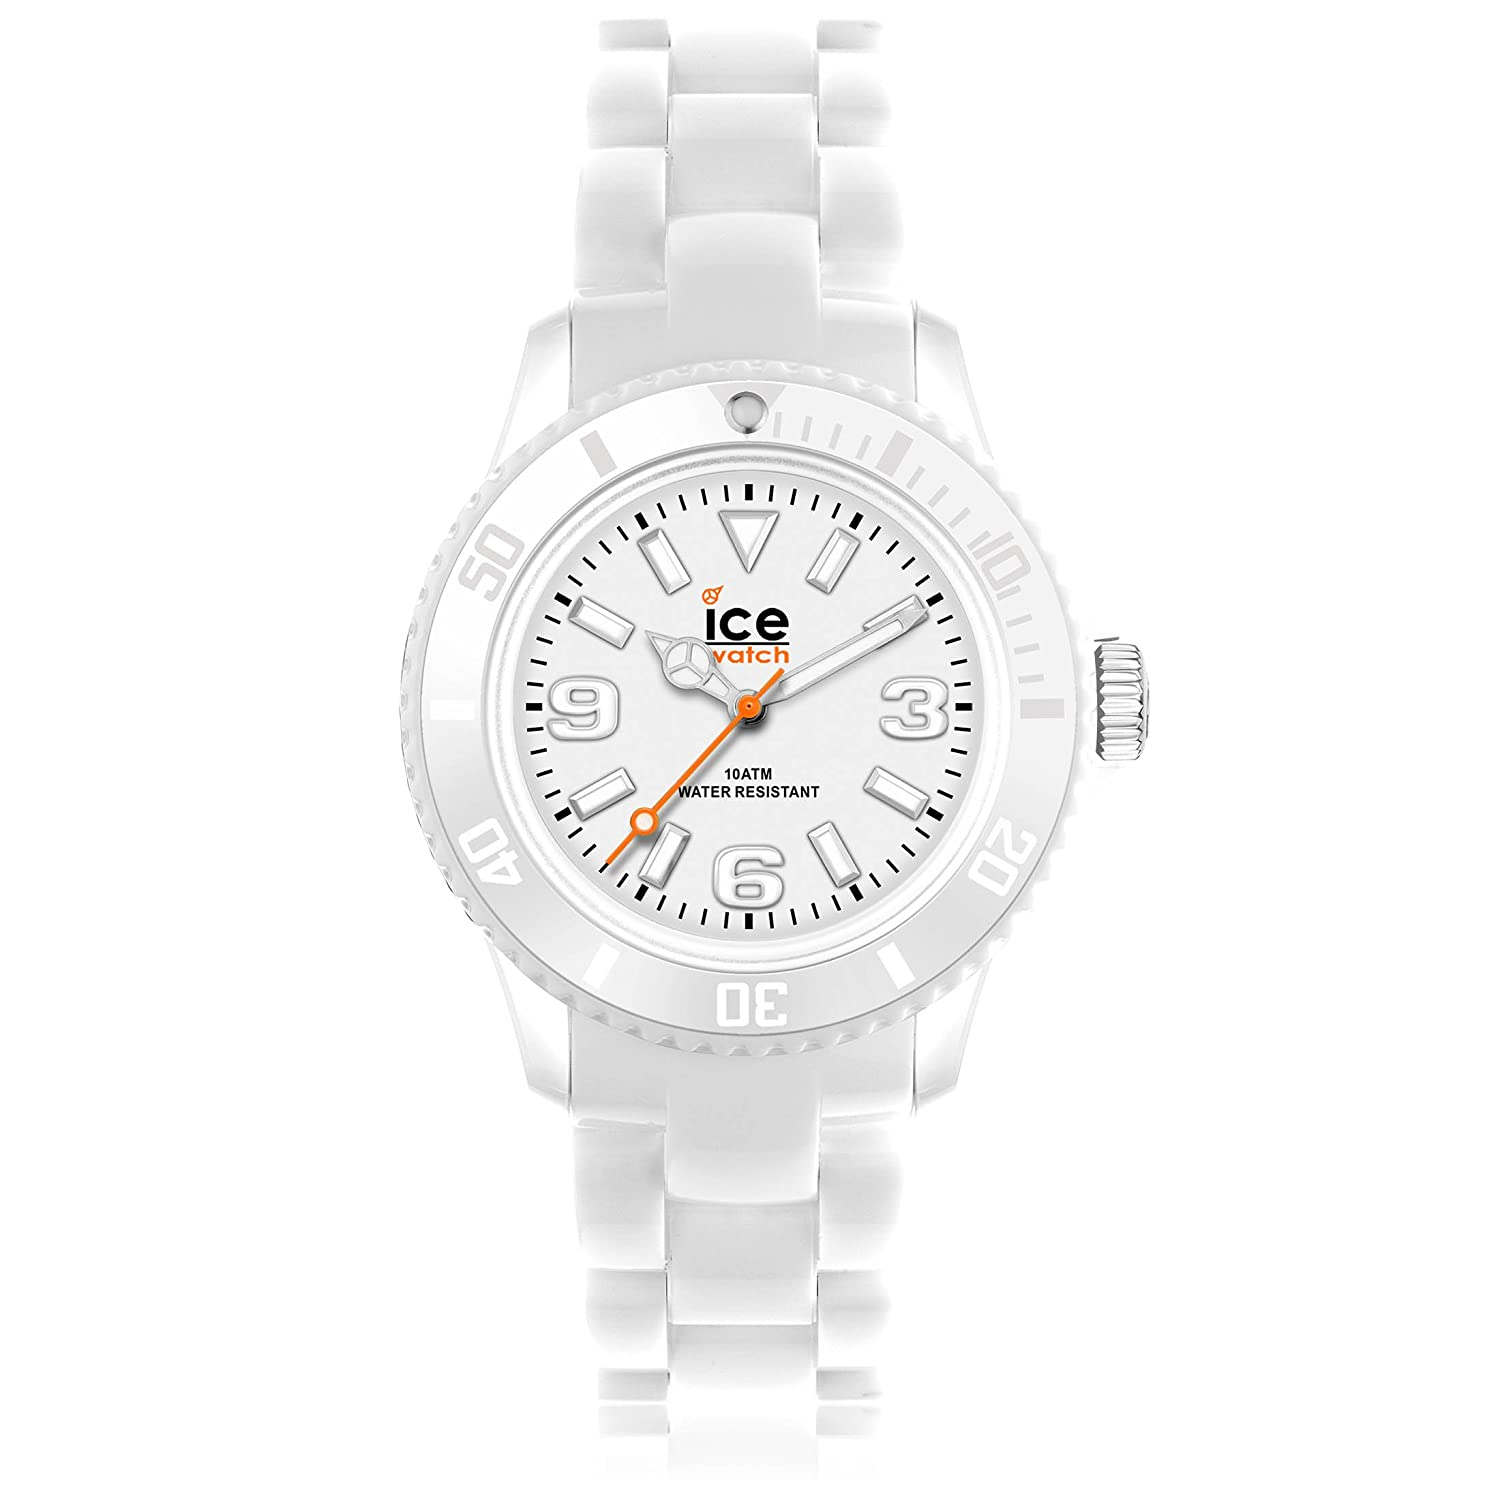 TALLA Medium. Ice Watch – Reloj de Pulsera Mujer